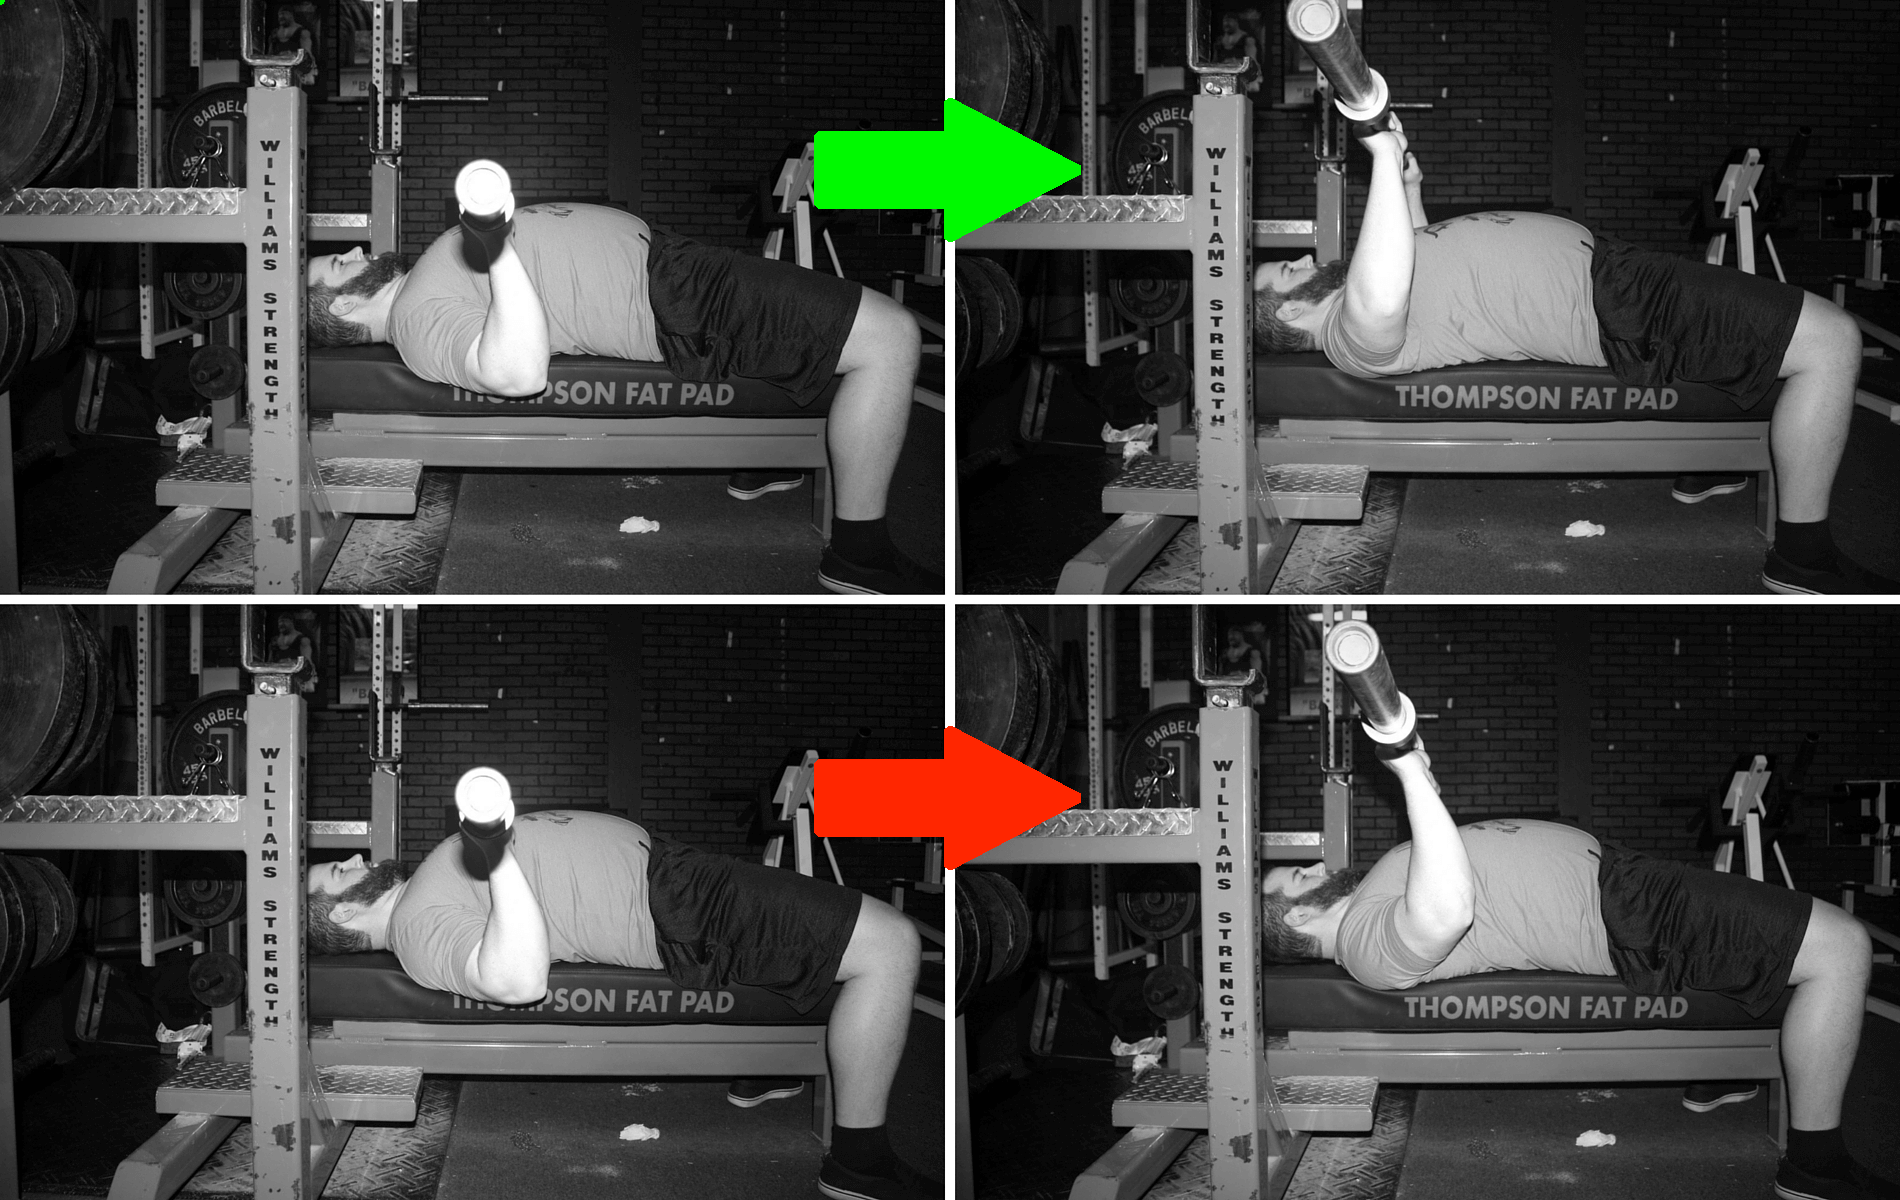 The top is acceptable: elbows slightly in front of the bar at the bottom, getting back under the bar through the midrange. The bottom is what you DON'T want to happen: elbows start in front of the bar and stay in front of the bar.